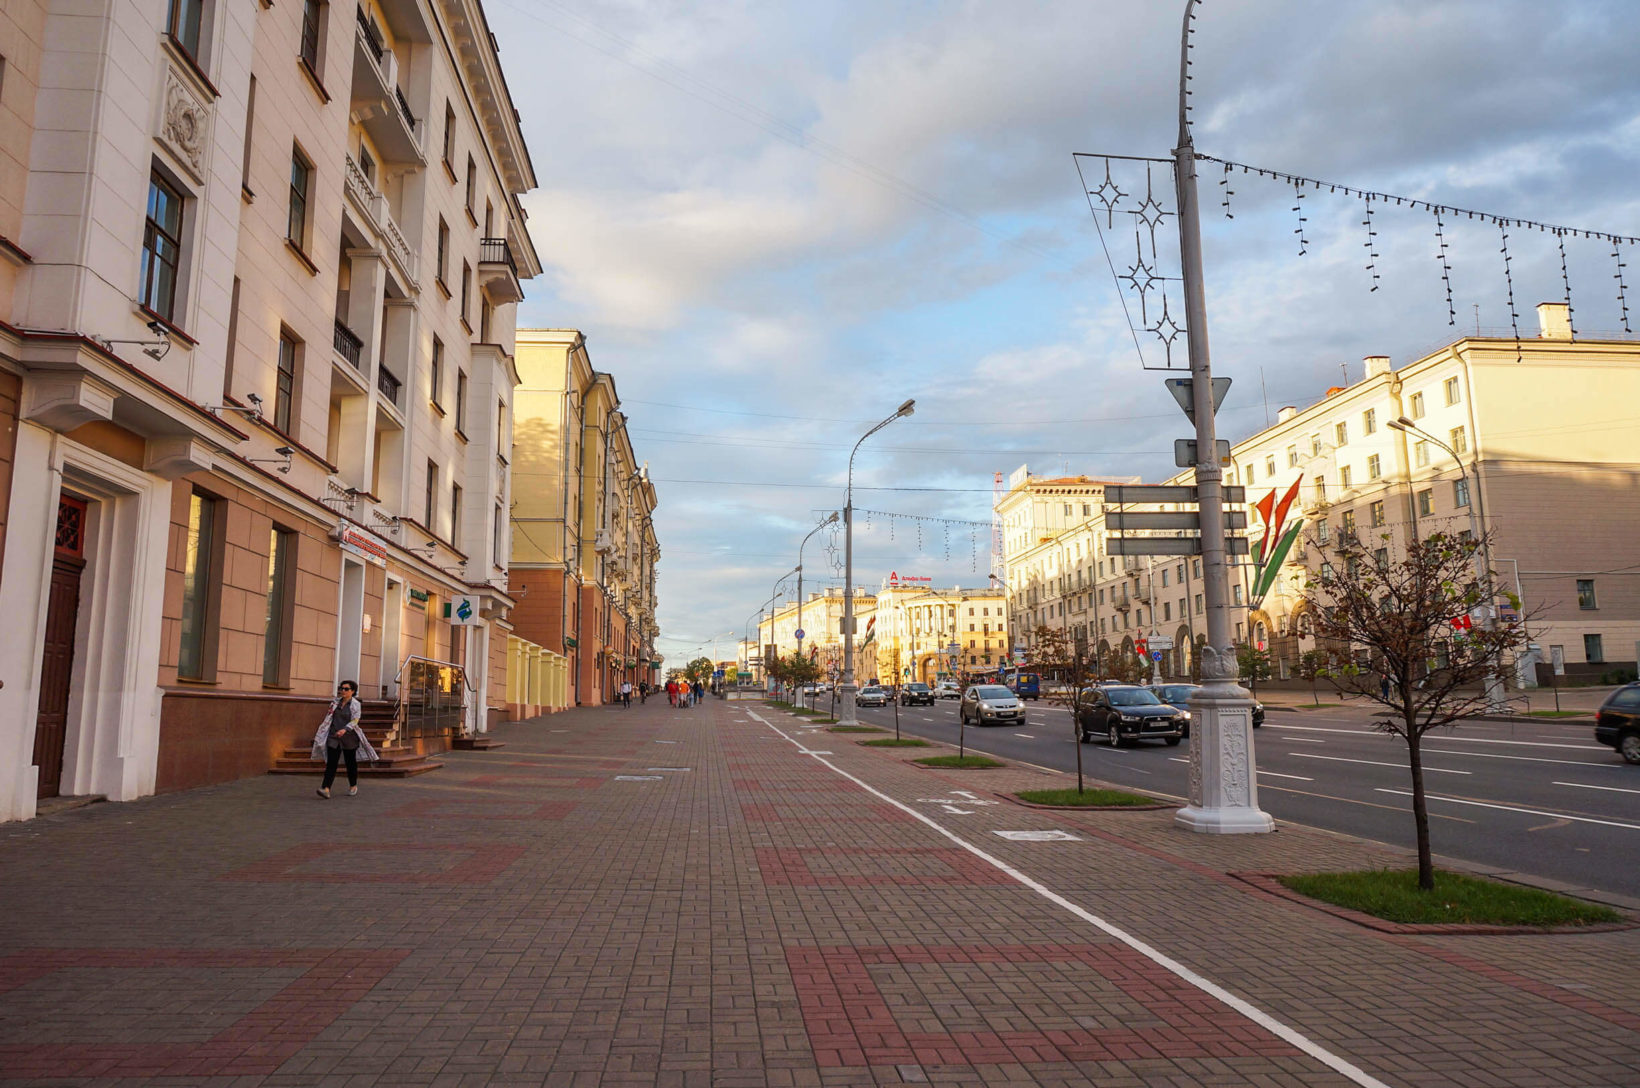 Clean independence avenue in Minsk, opinions about Belarus